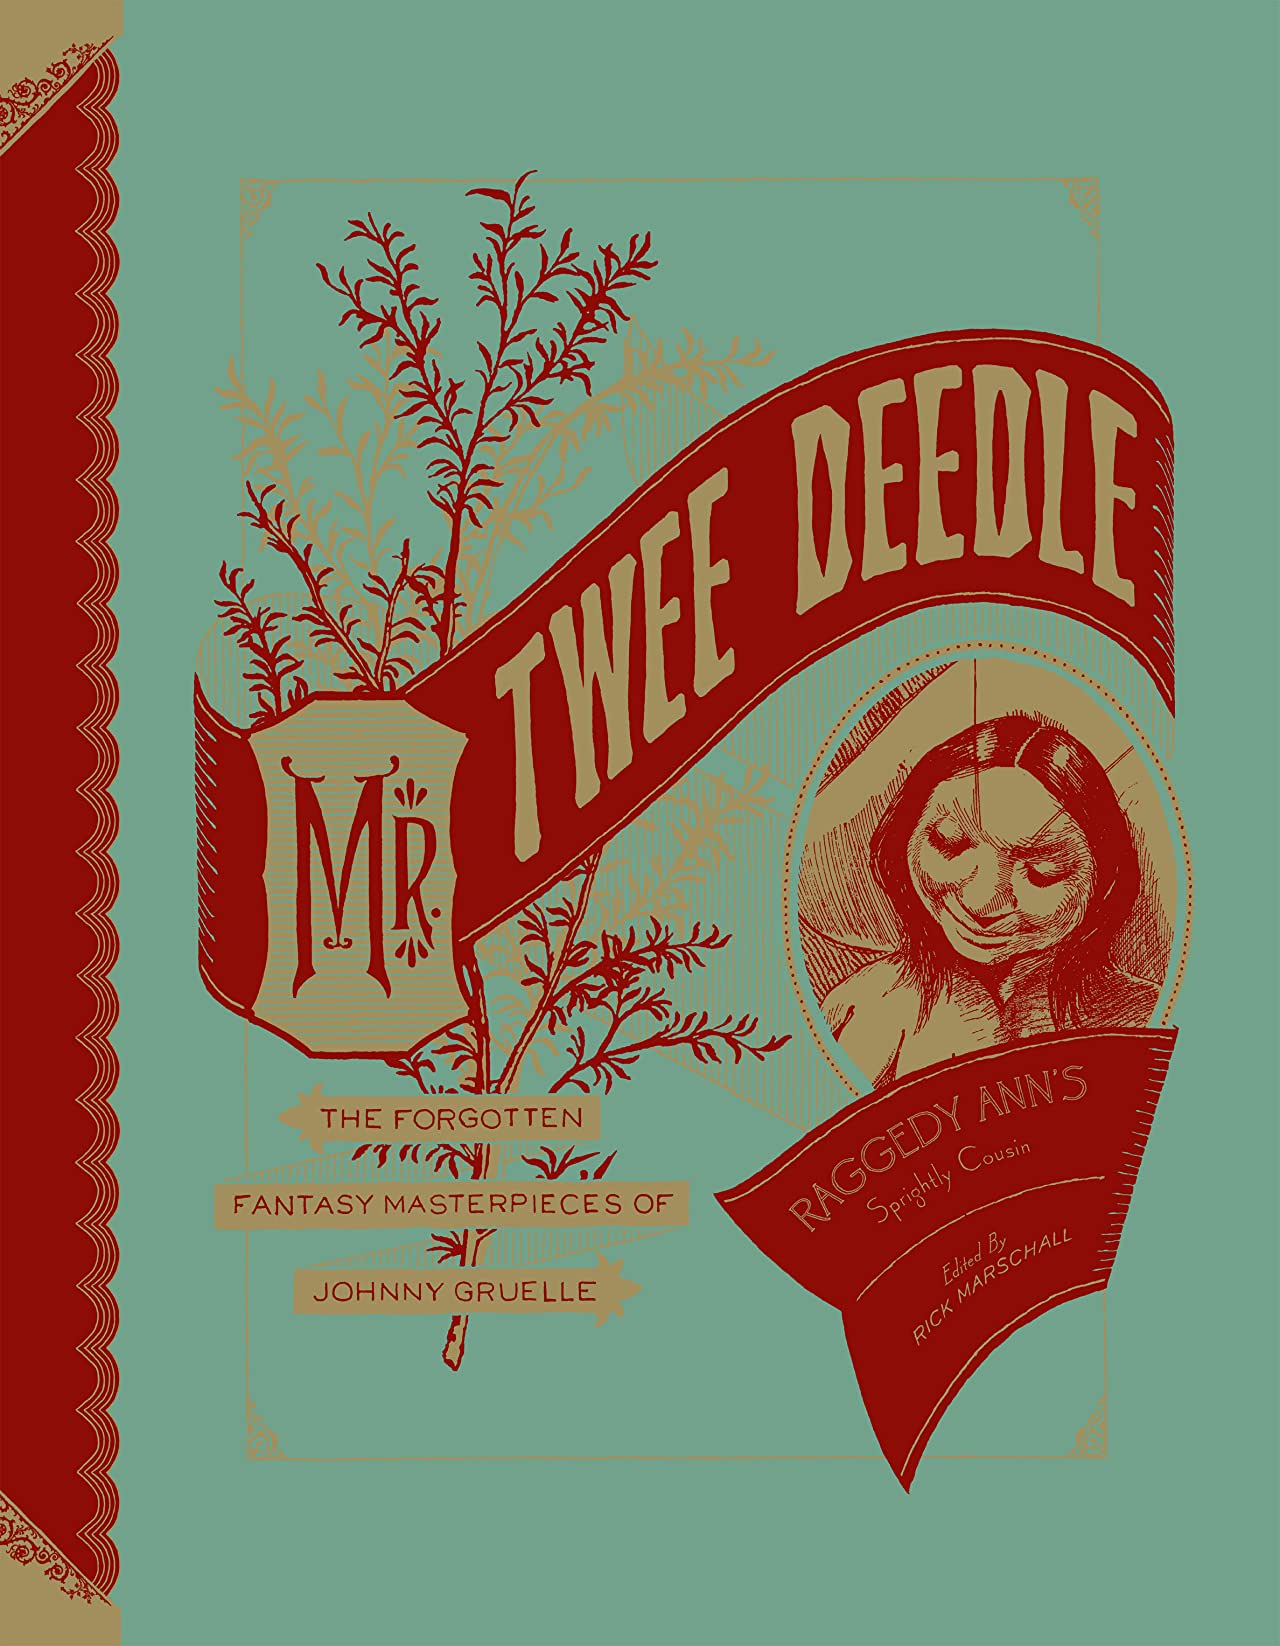 Mr. Twee Deedle — Raggedy Ann's Sprightly Cousin: The Forgotten Fantasy Masterpieces of Johnny Gruelle